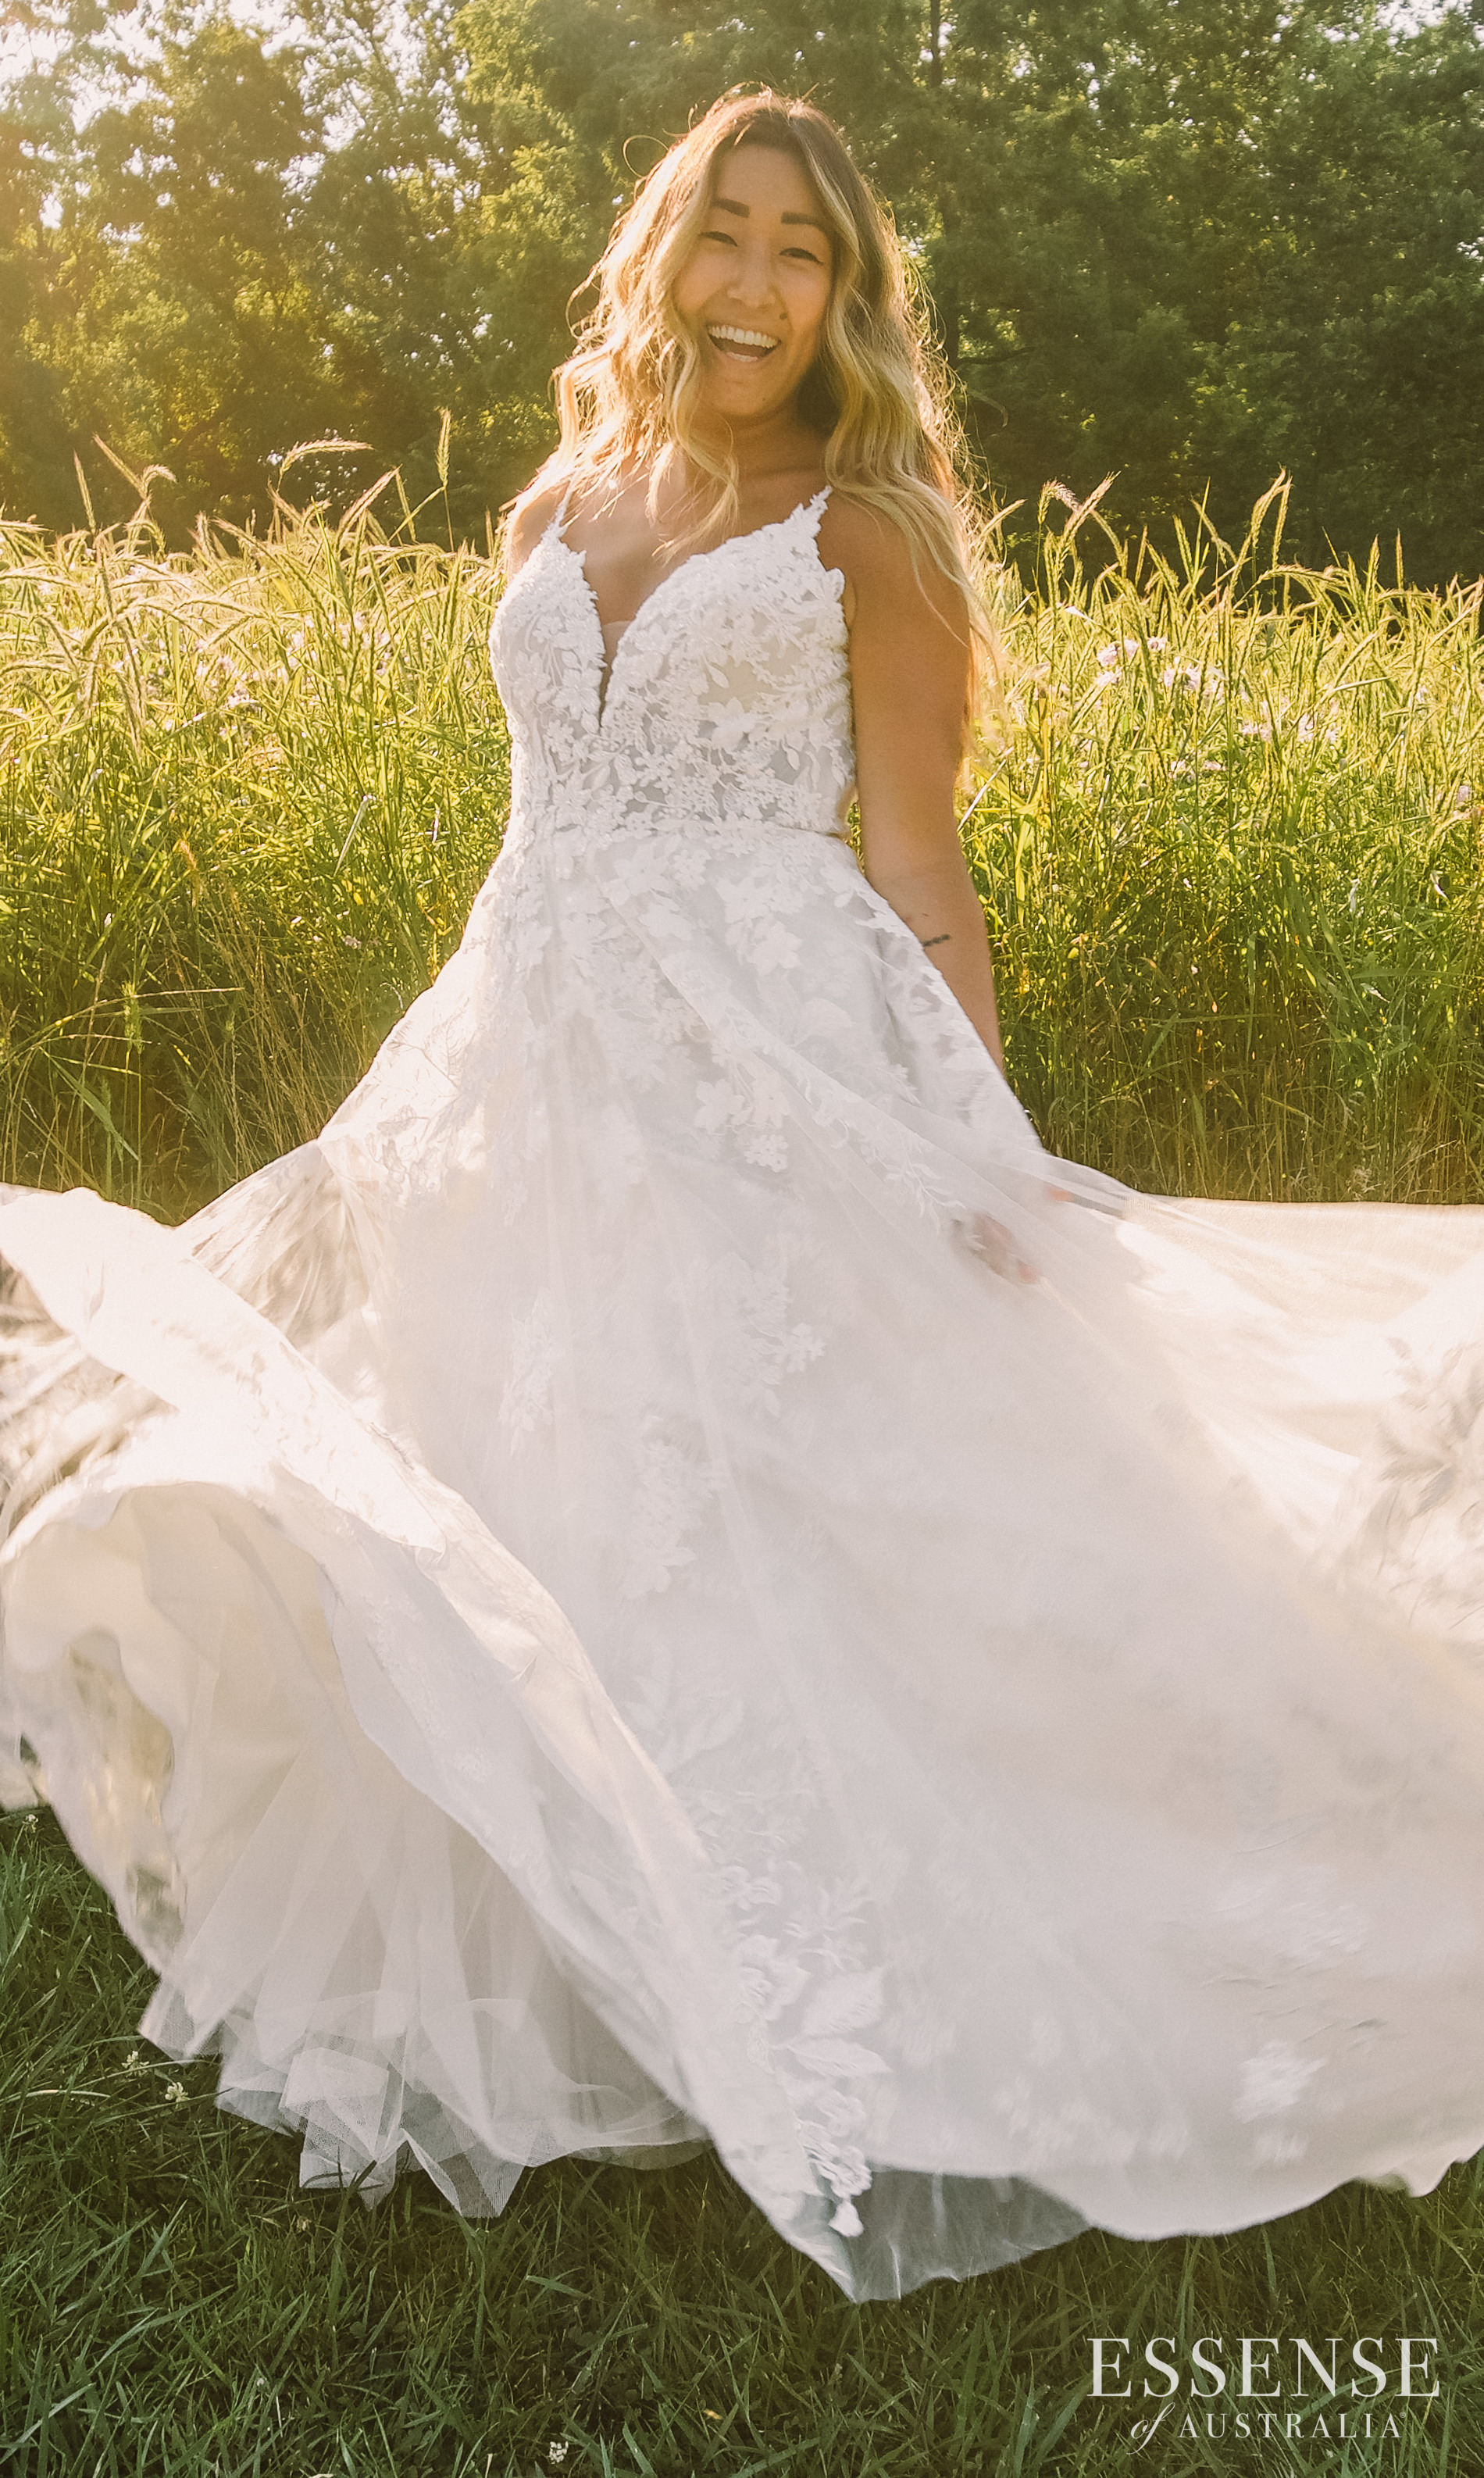 Essense of Australia Wedding Dresses Spring 2020Essense of Australia Wedding Dresses Spring 2020 - 3157PP5